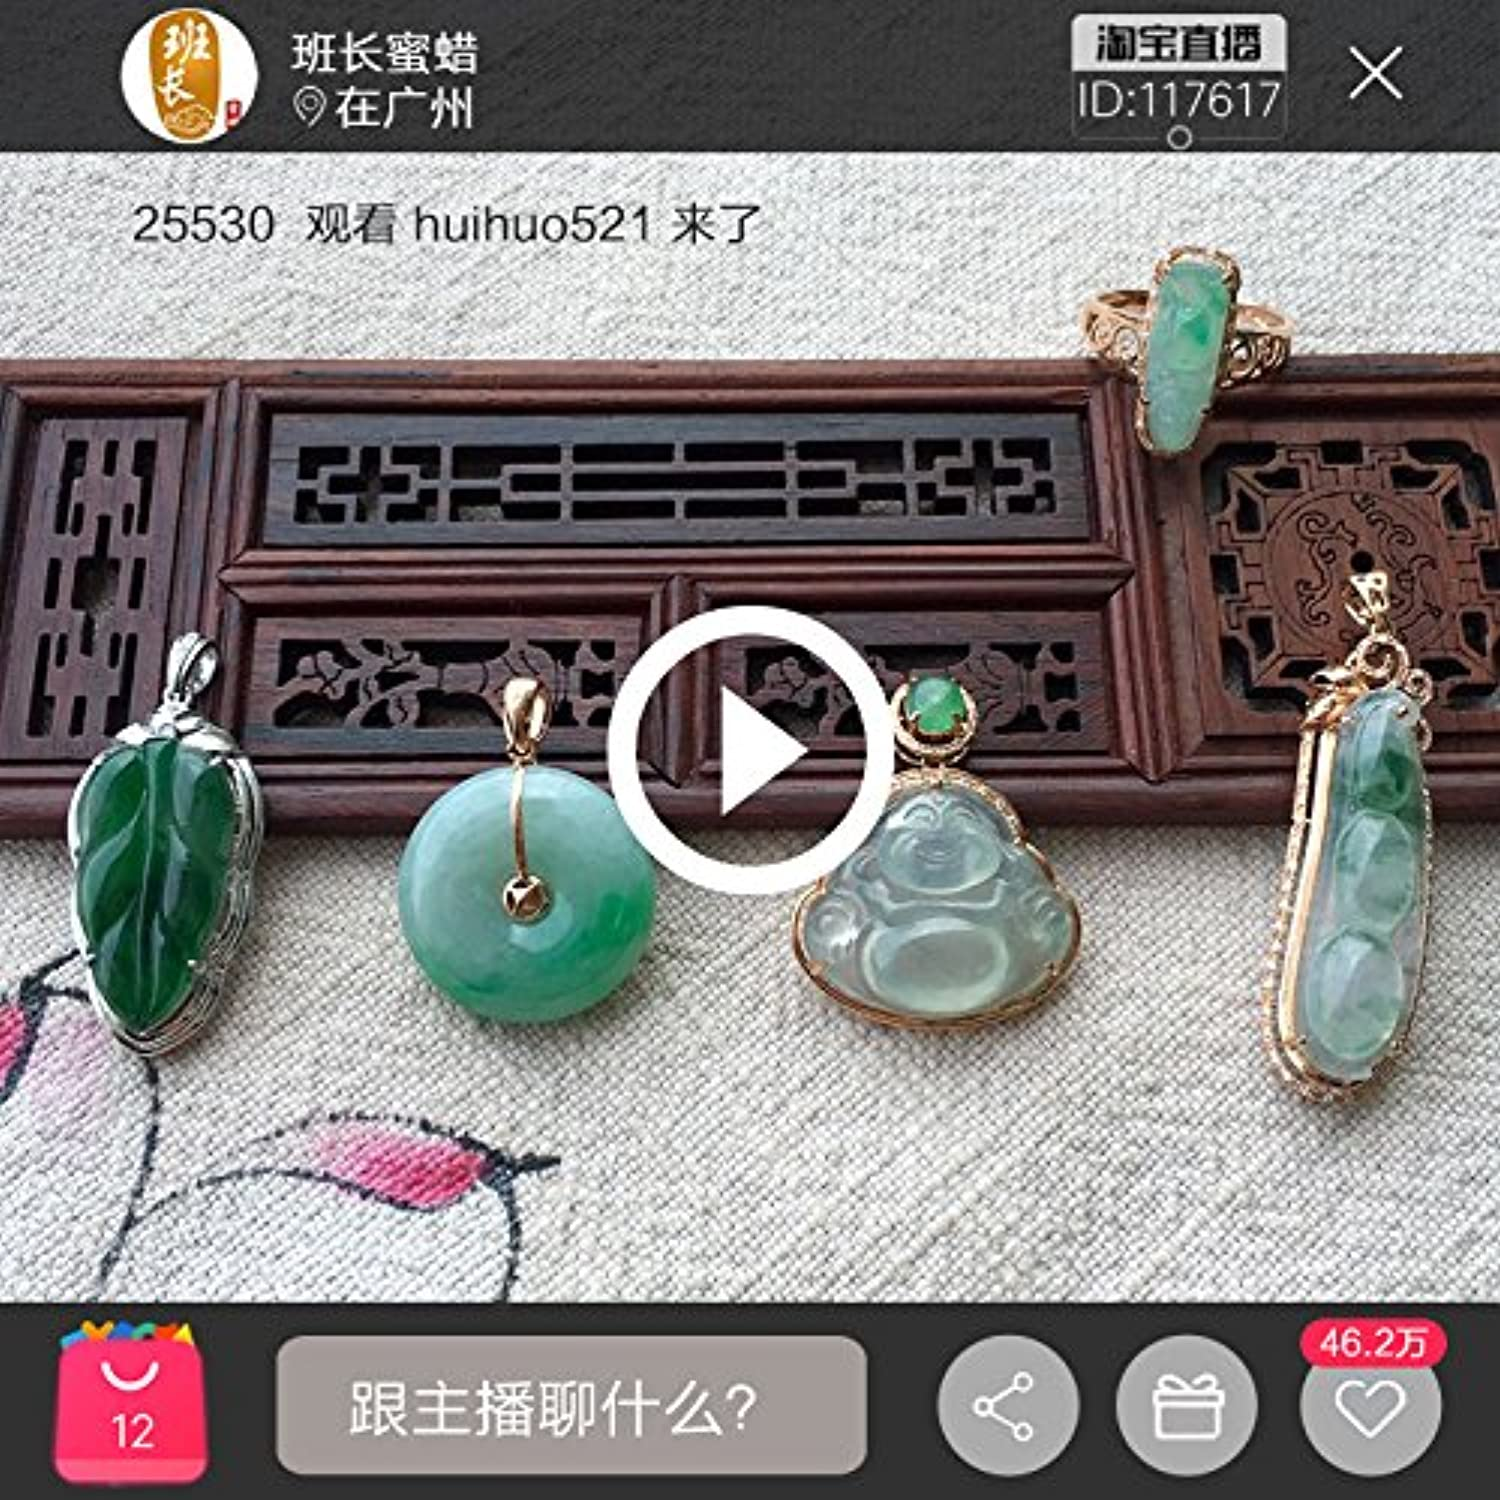 Natural Jade and Nephrite Jade Necklace Pendant Brave Wishful Guanyin Buddha Public Peace Buckle Men's Necklace Pendant Women Girls Models 18 I